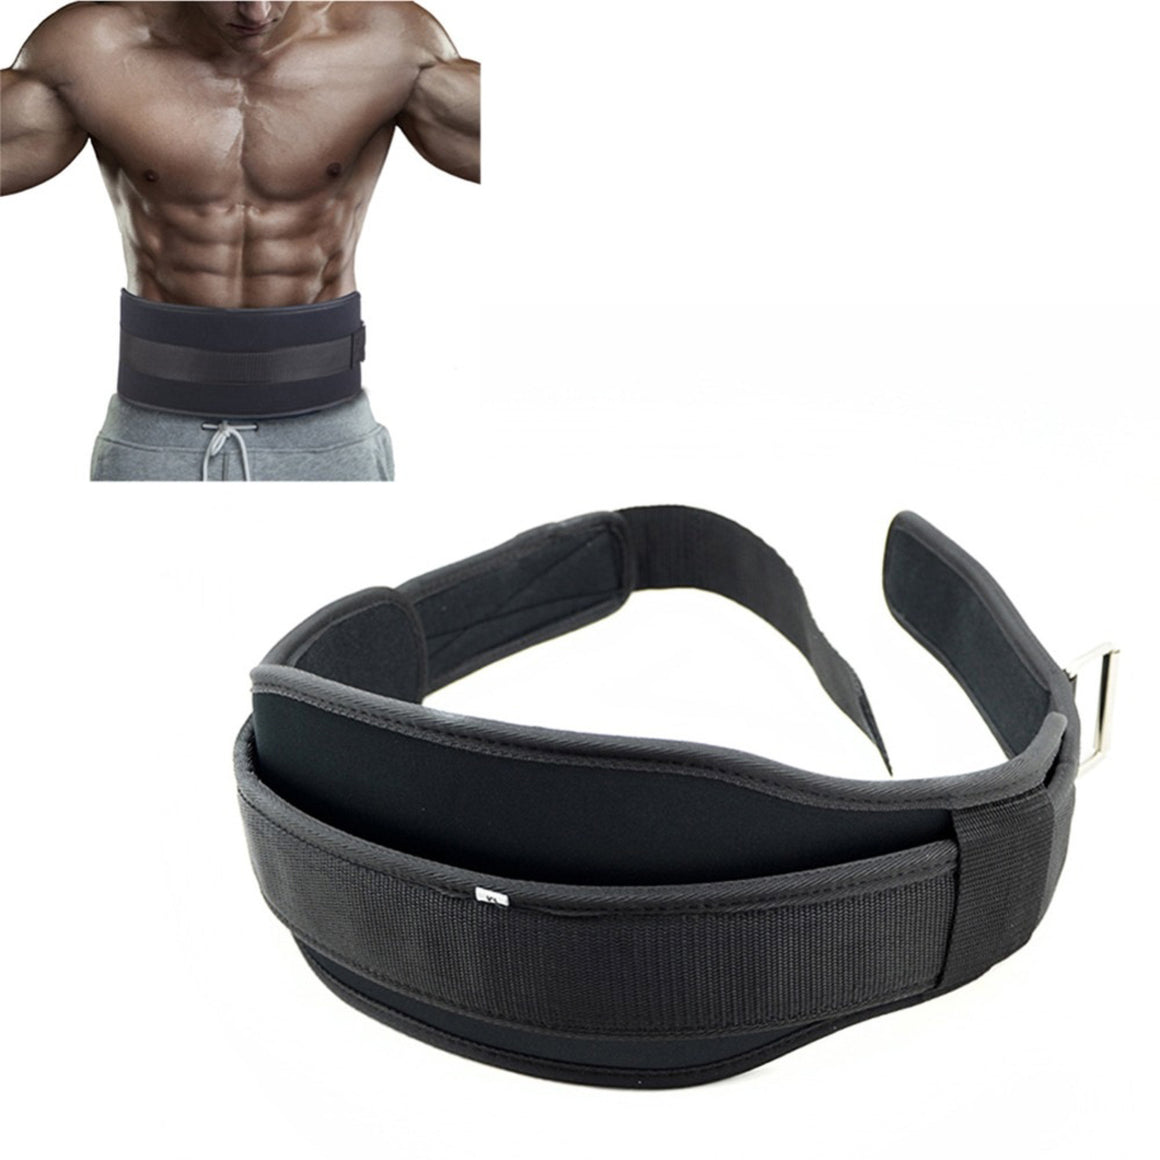 Fitness Weight Lifting Belt Barbell Dumbbel Training Back Support Weightlifting Belt Gym Squat Dip Powerlifting Waist Protector